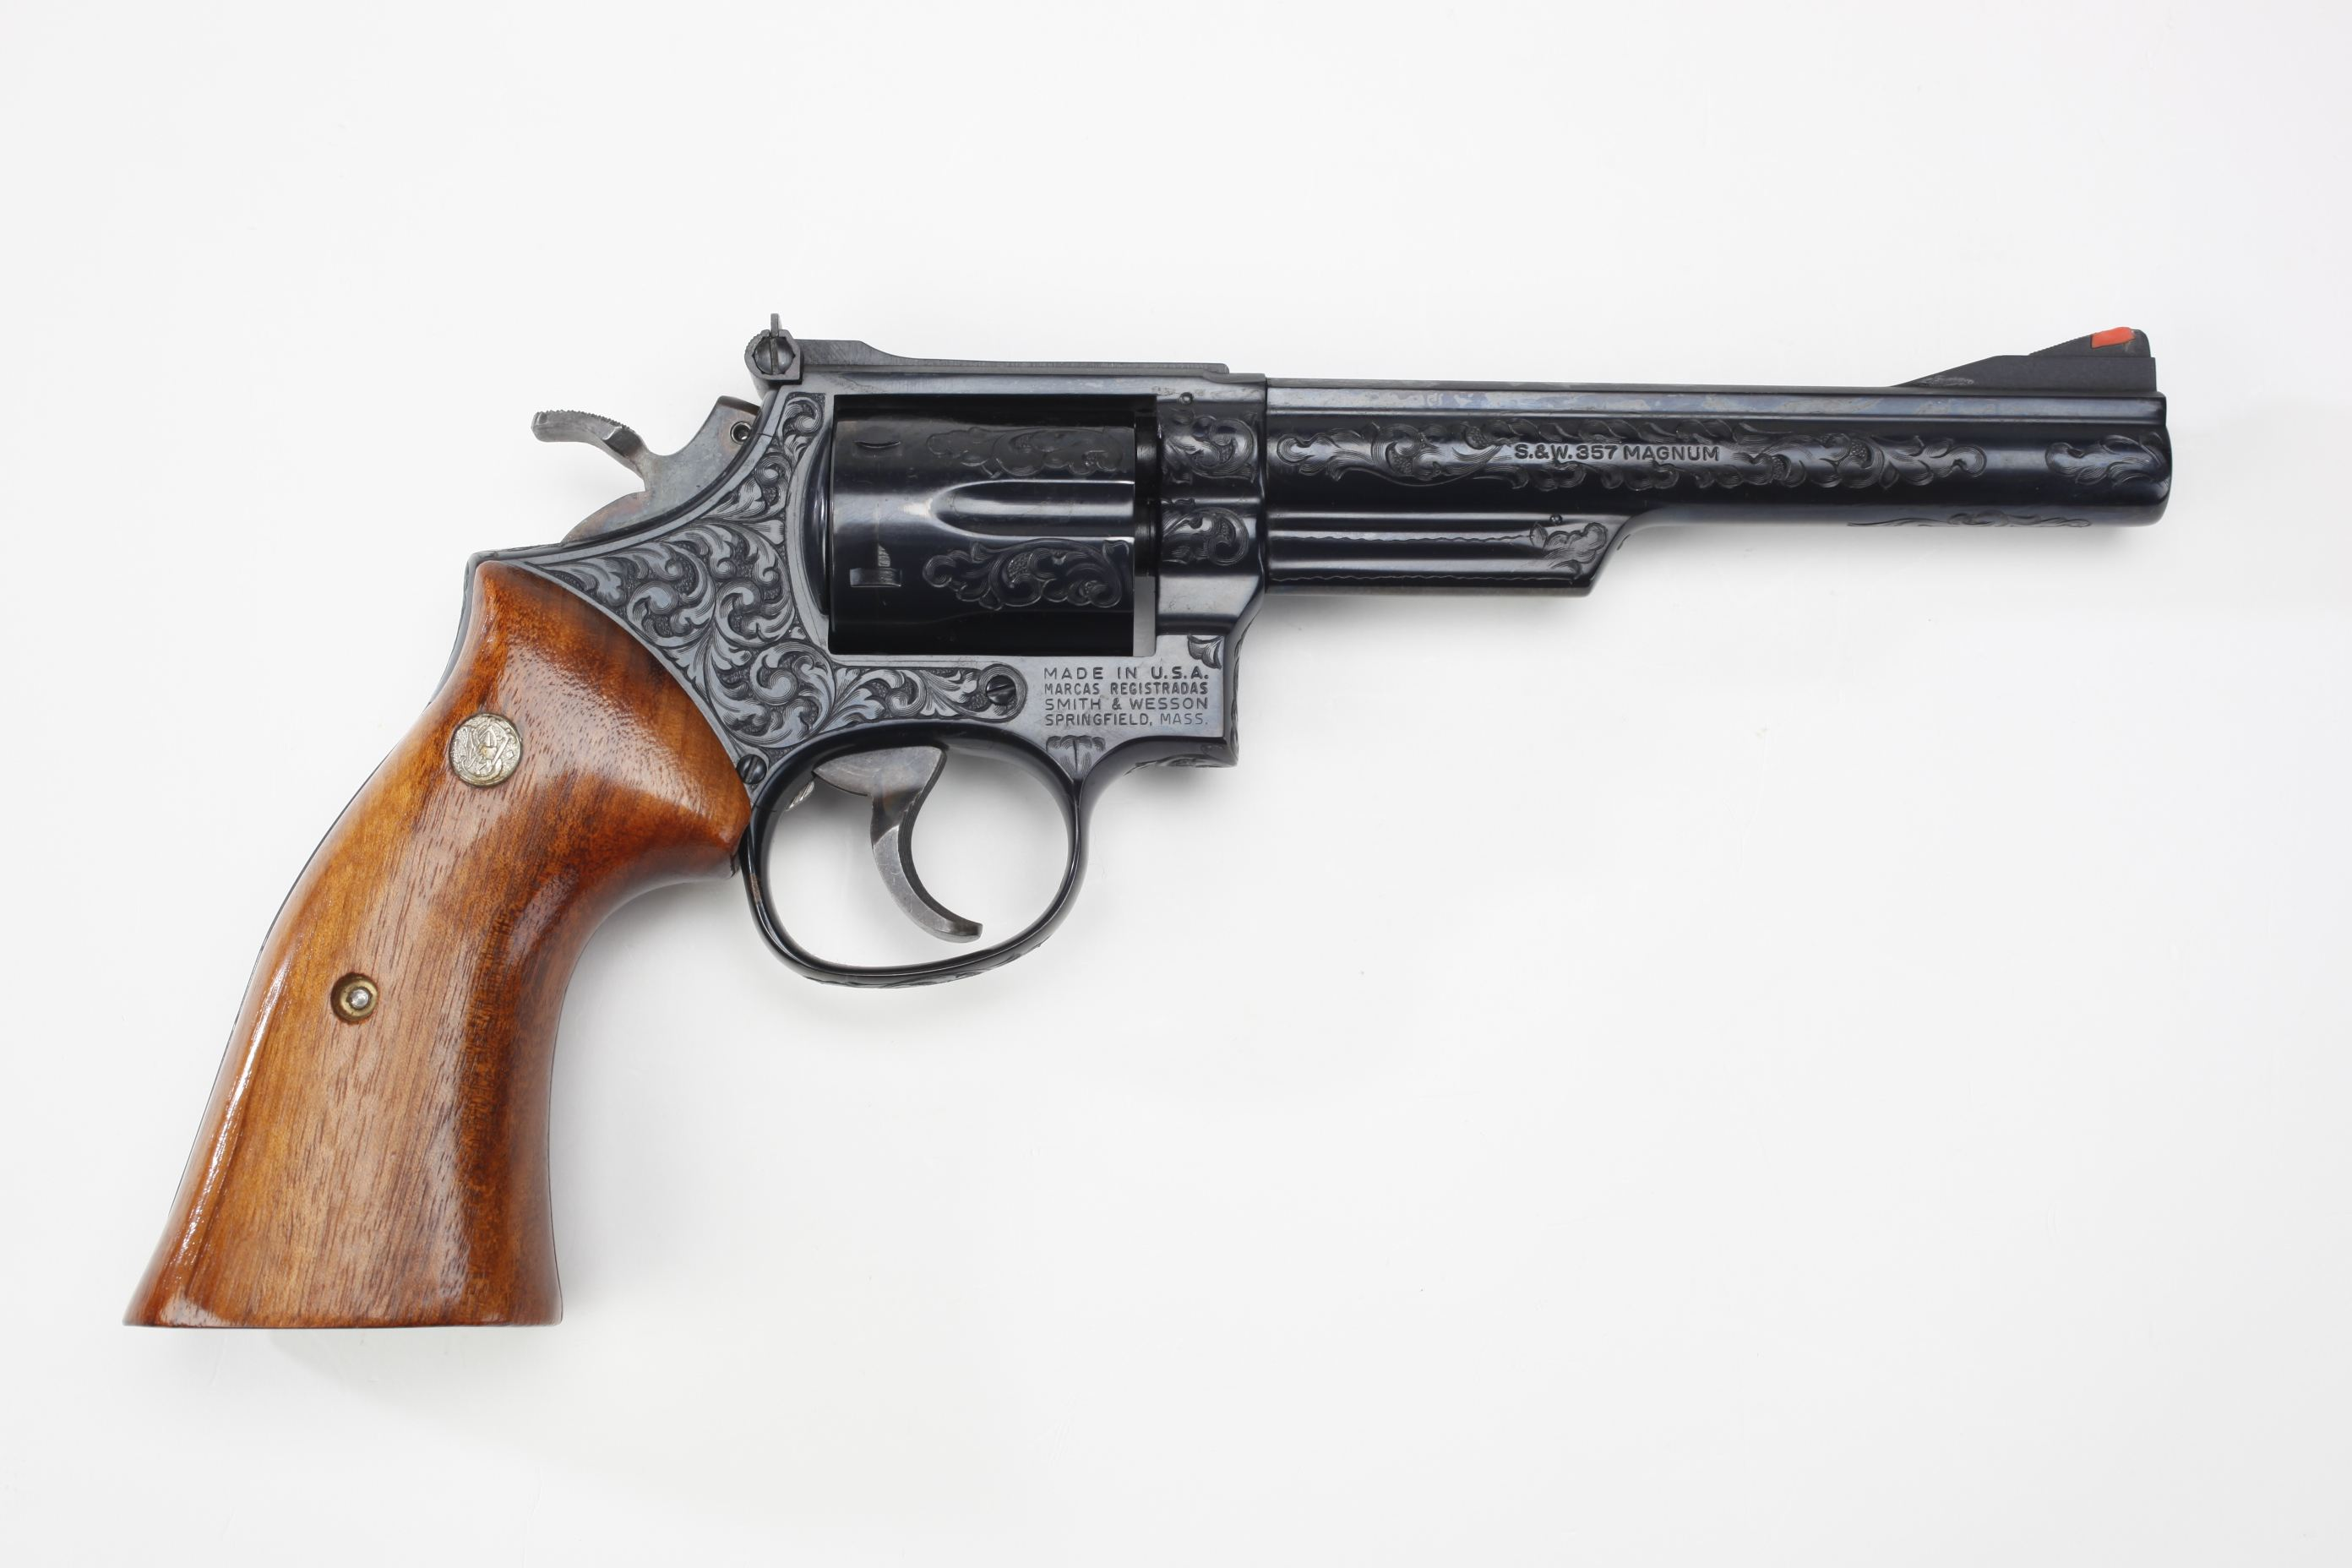 Smith & Wesson (Springfield, MA) Model 19 Double-Action Revolver